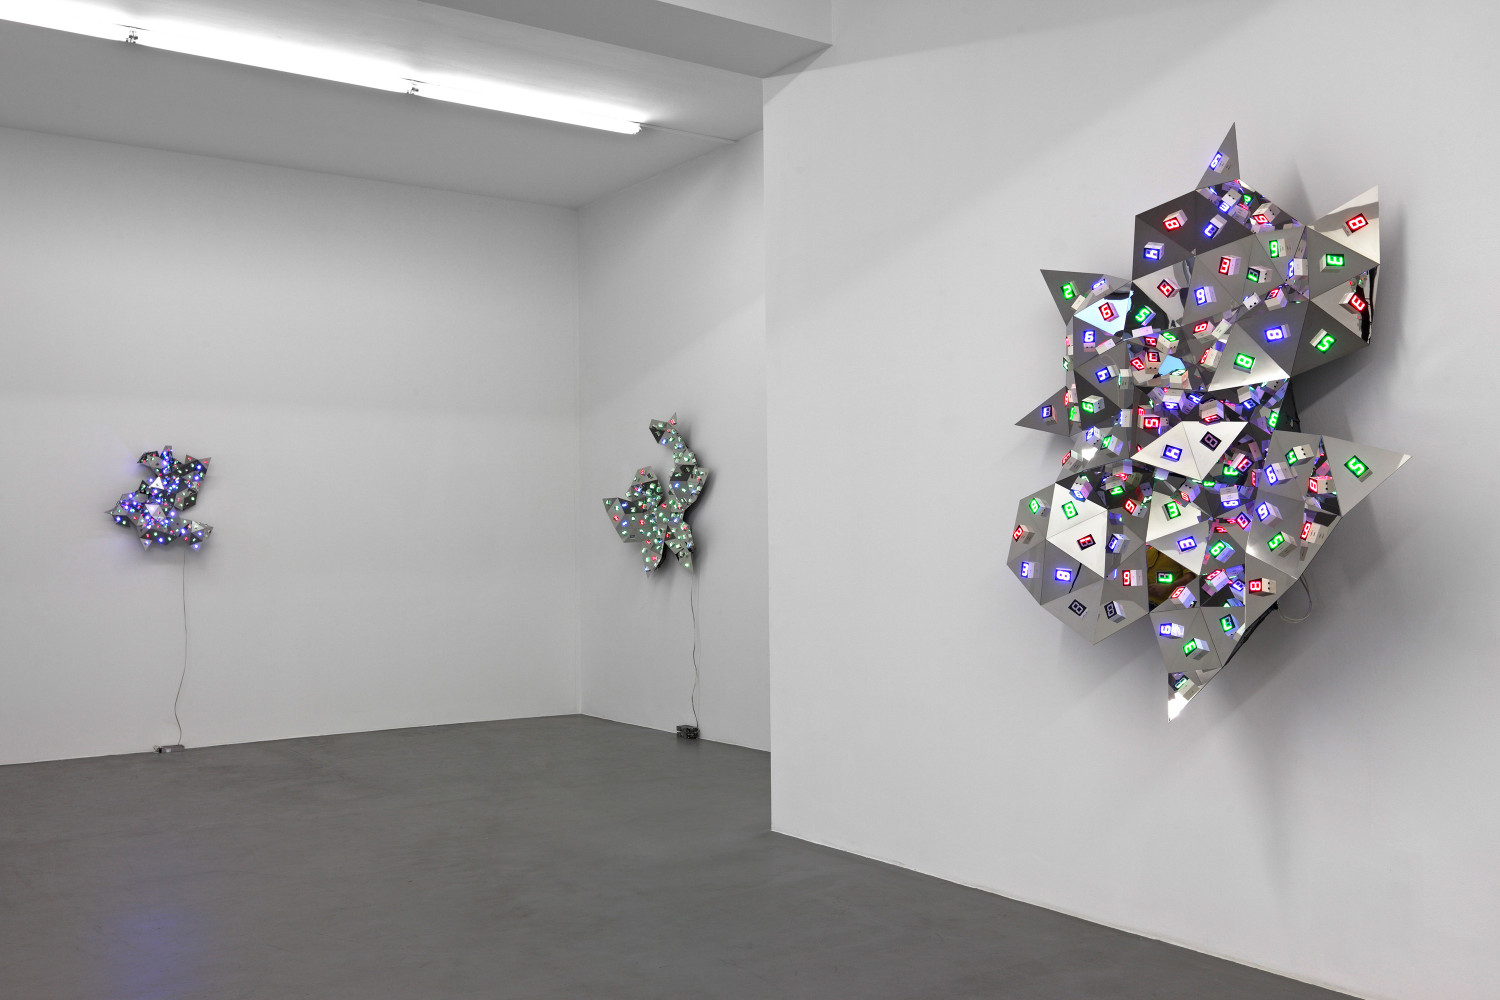 Tatsuo Miyajima, 'Diamond in You', Installation view, Buchmann Galerie, 2010